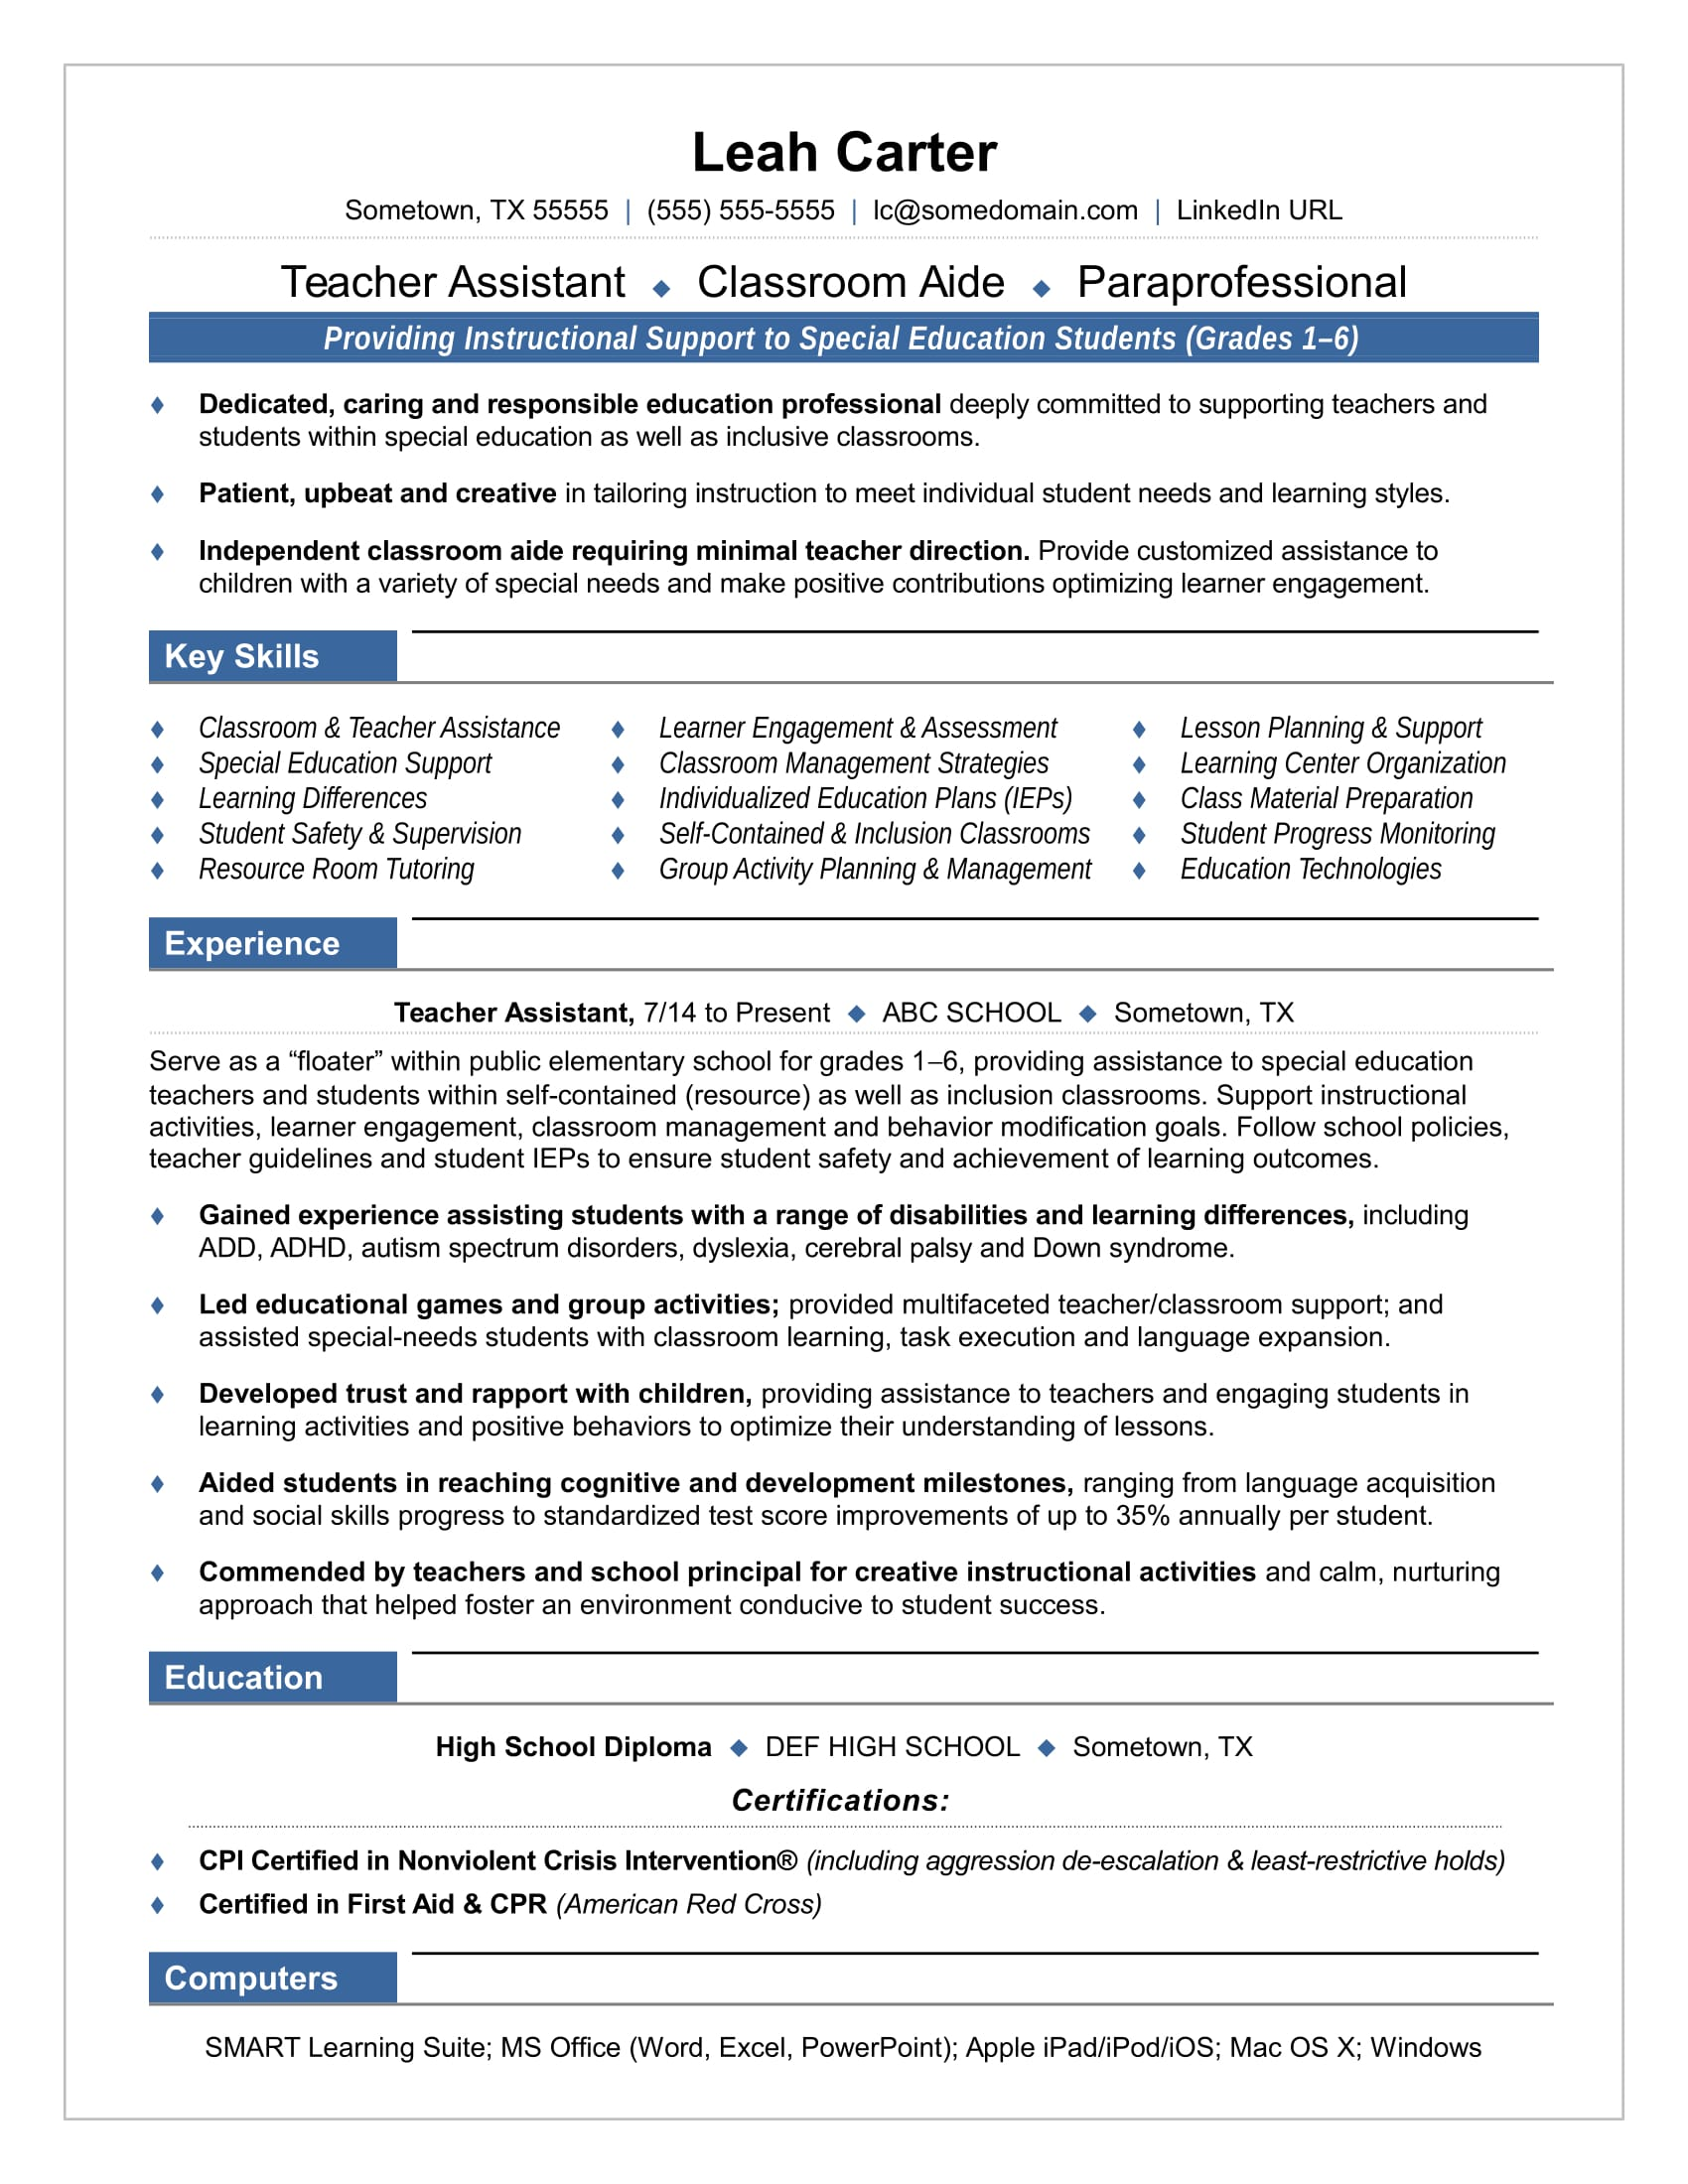 Teacher Assistant Resume Sample | Monster.com